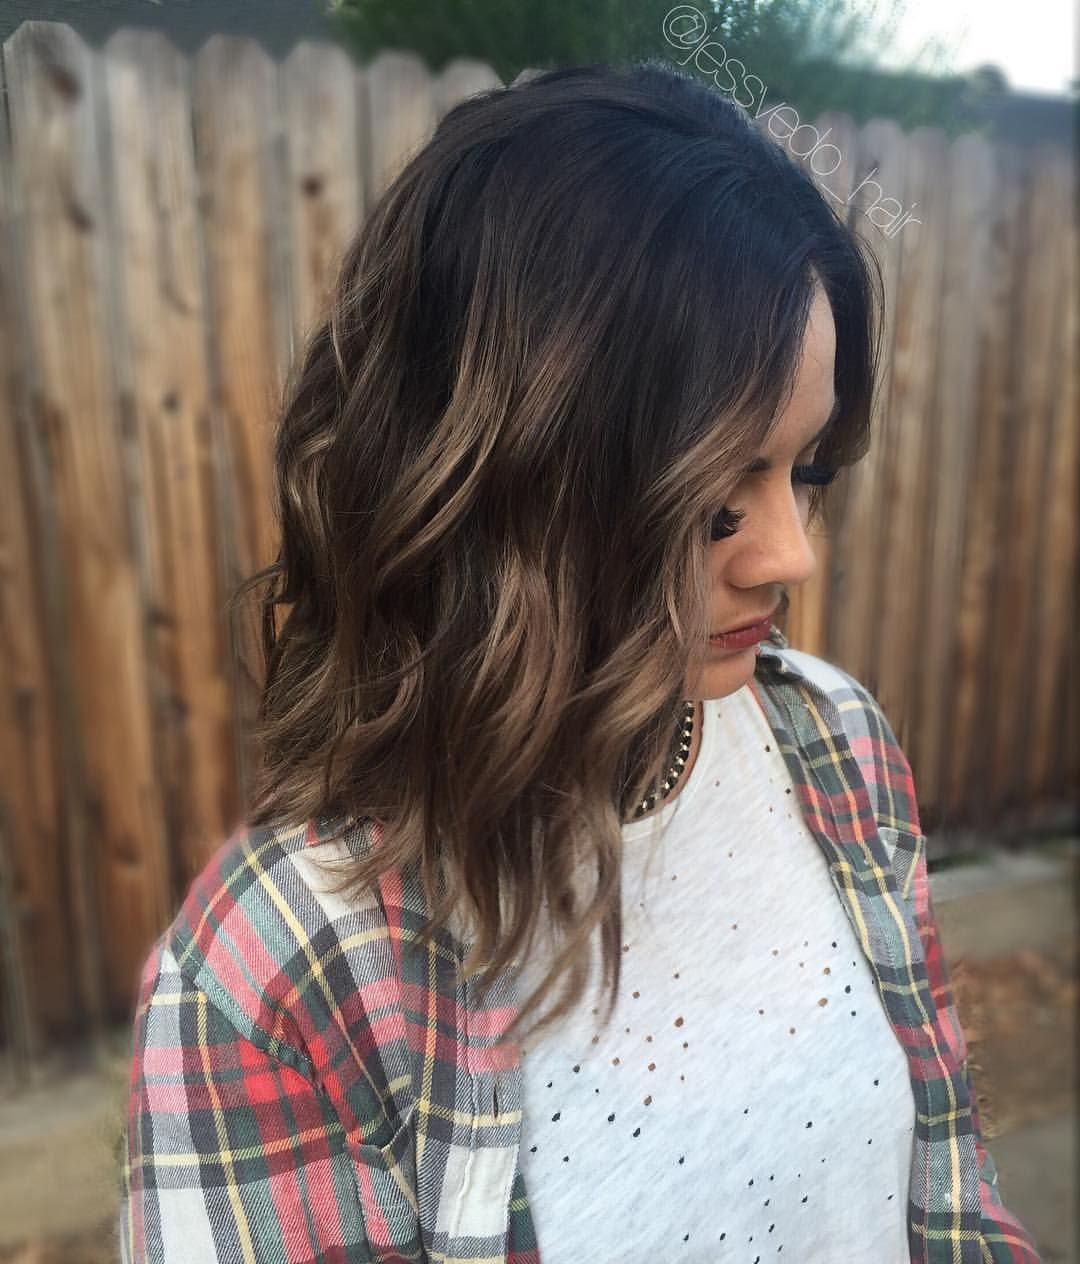 Hairstylist In Roseville California At Life Spa In Lifetime